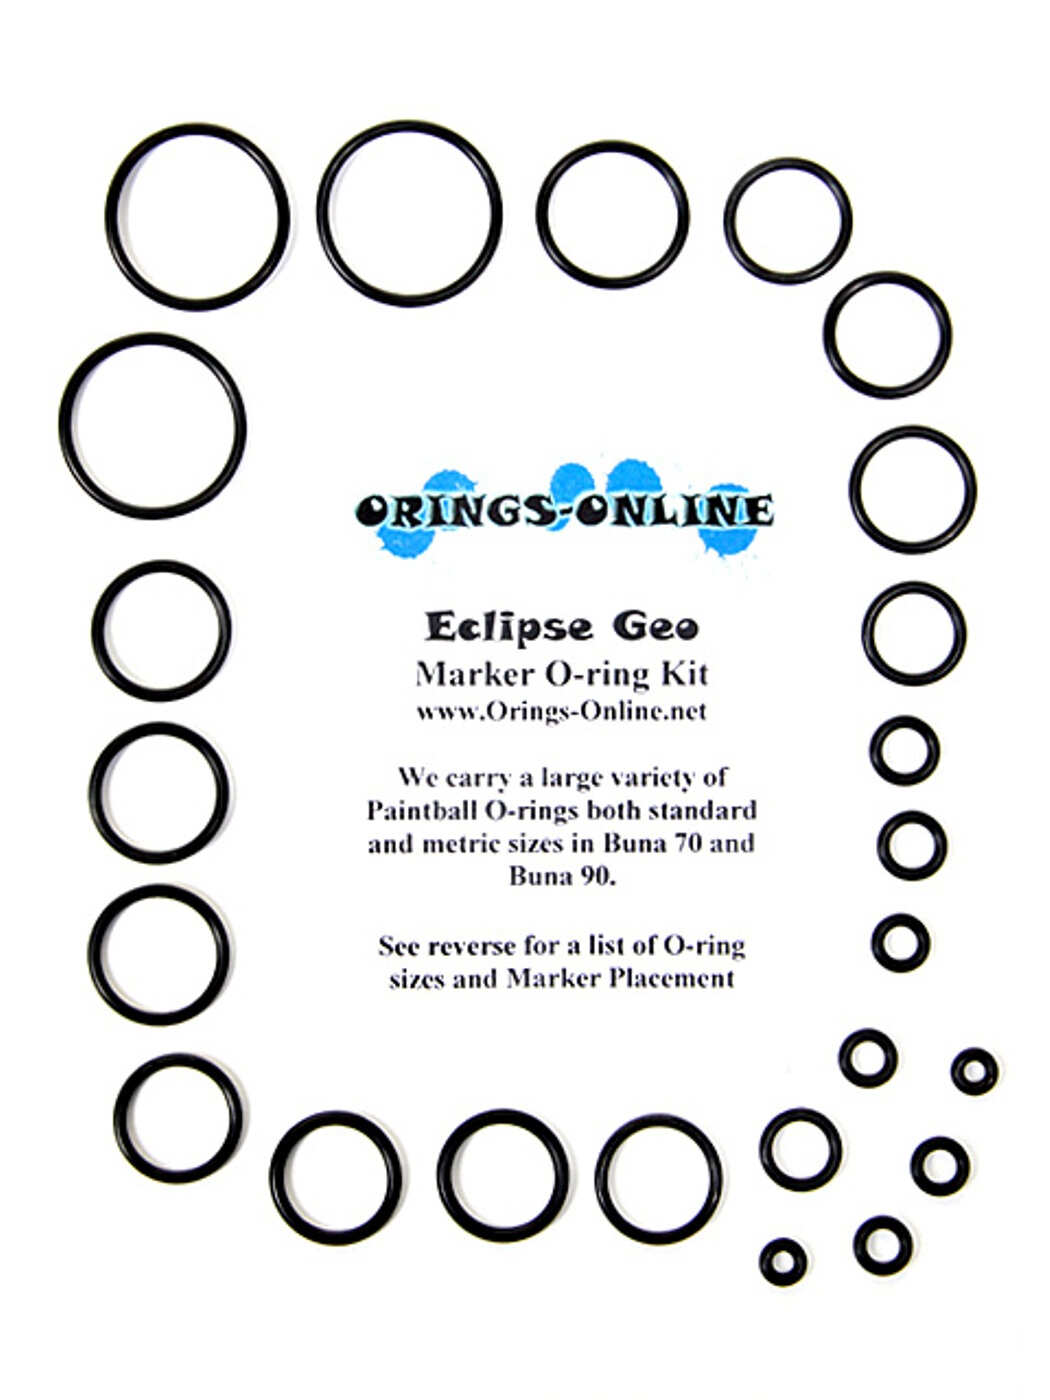 Planet Eclipse Geo Marker O-ring Kit